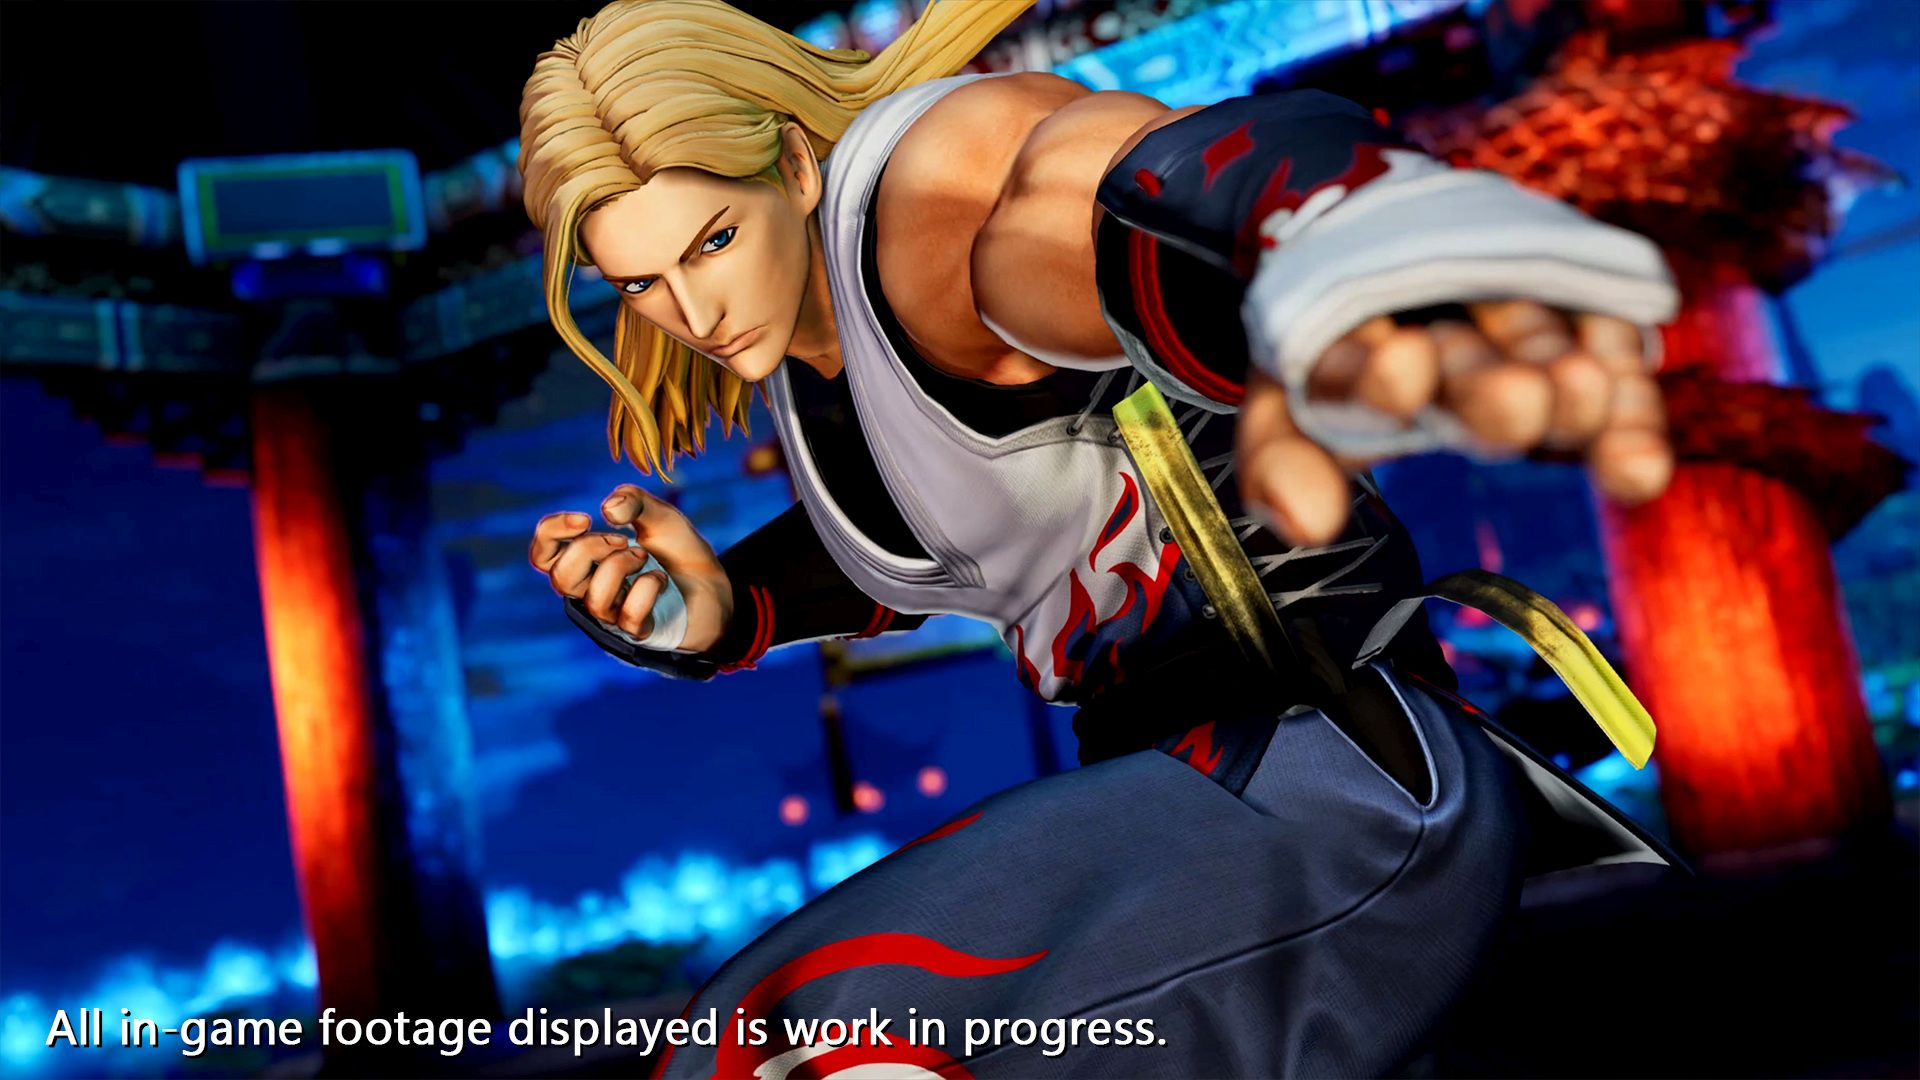 The King of Fighters 15 - Andy Bogard